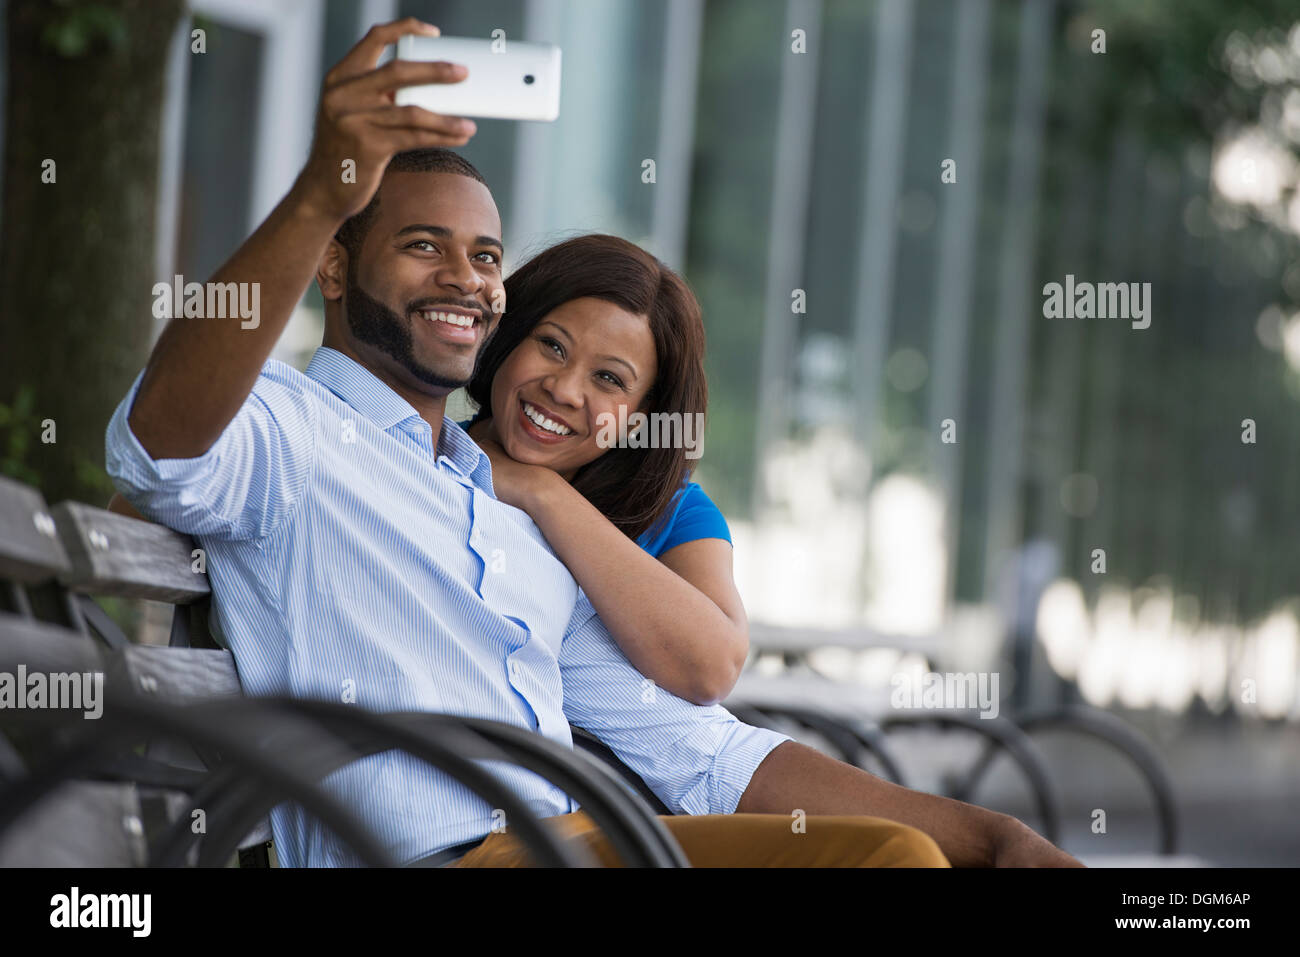 Summer. A couple sitting on a bench, taking a selfy photograph. - Stock Image